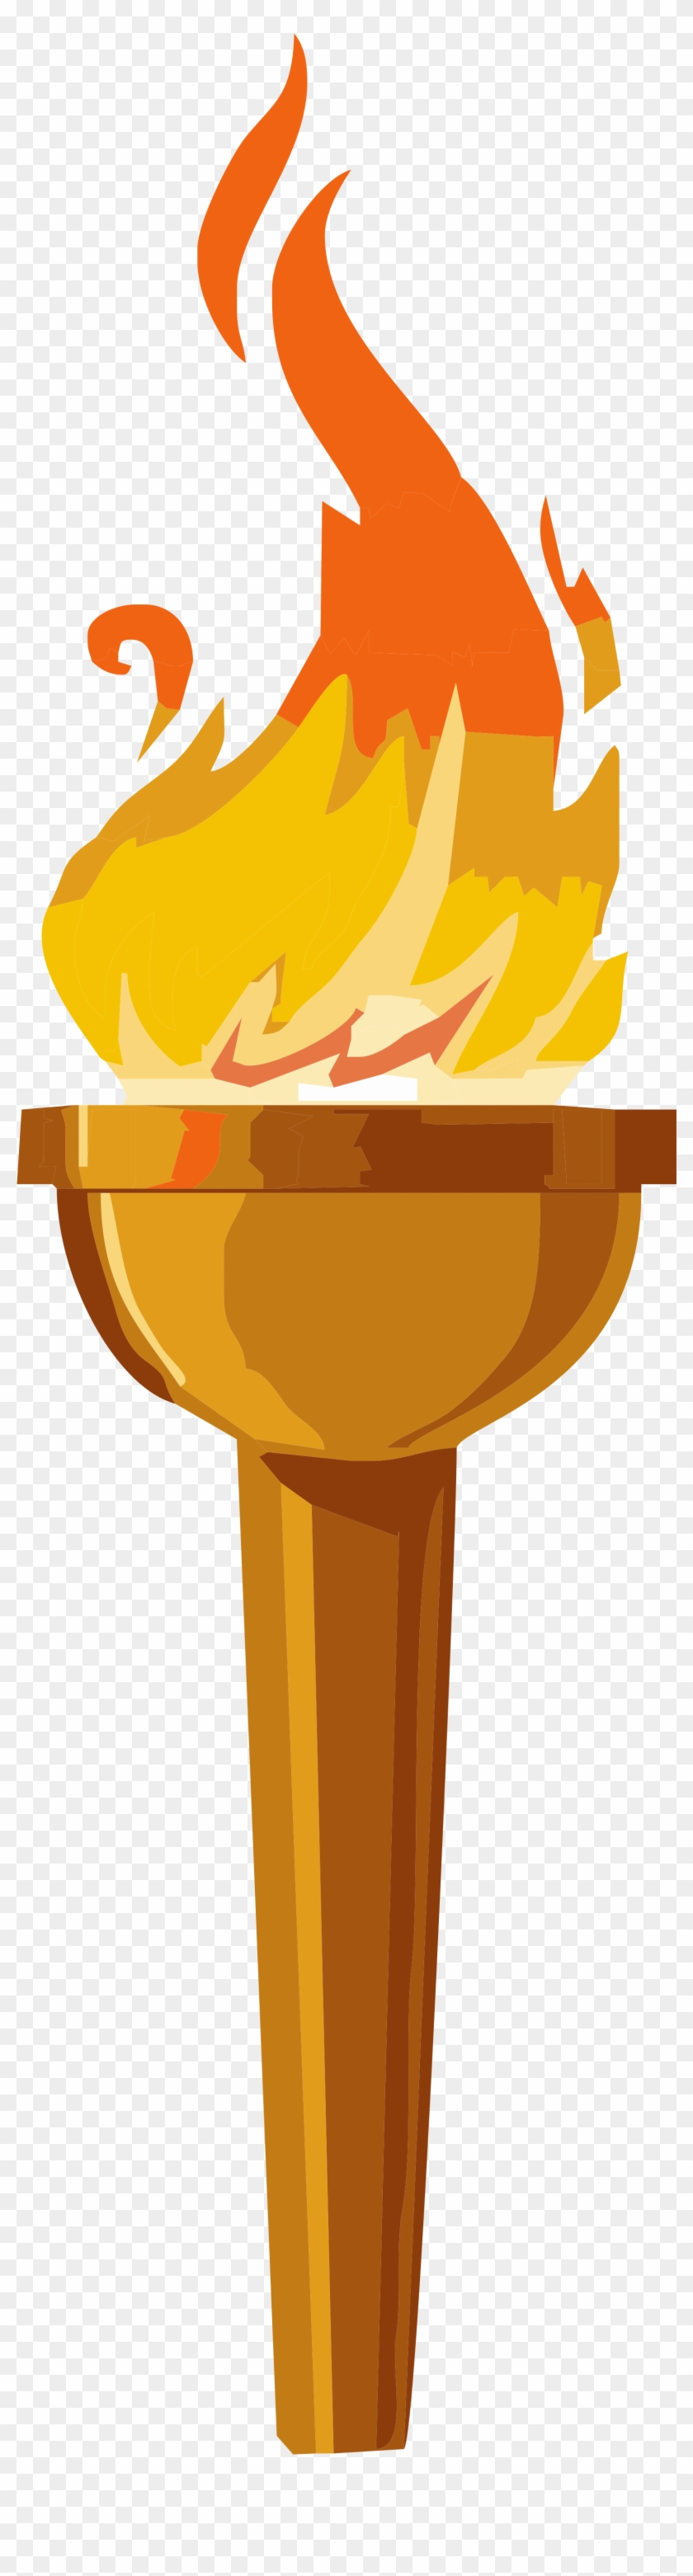 Cartoon Fire Torches , Fire - Olympic Torch Clip Art #24248